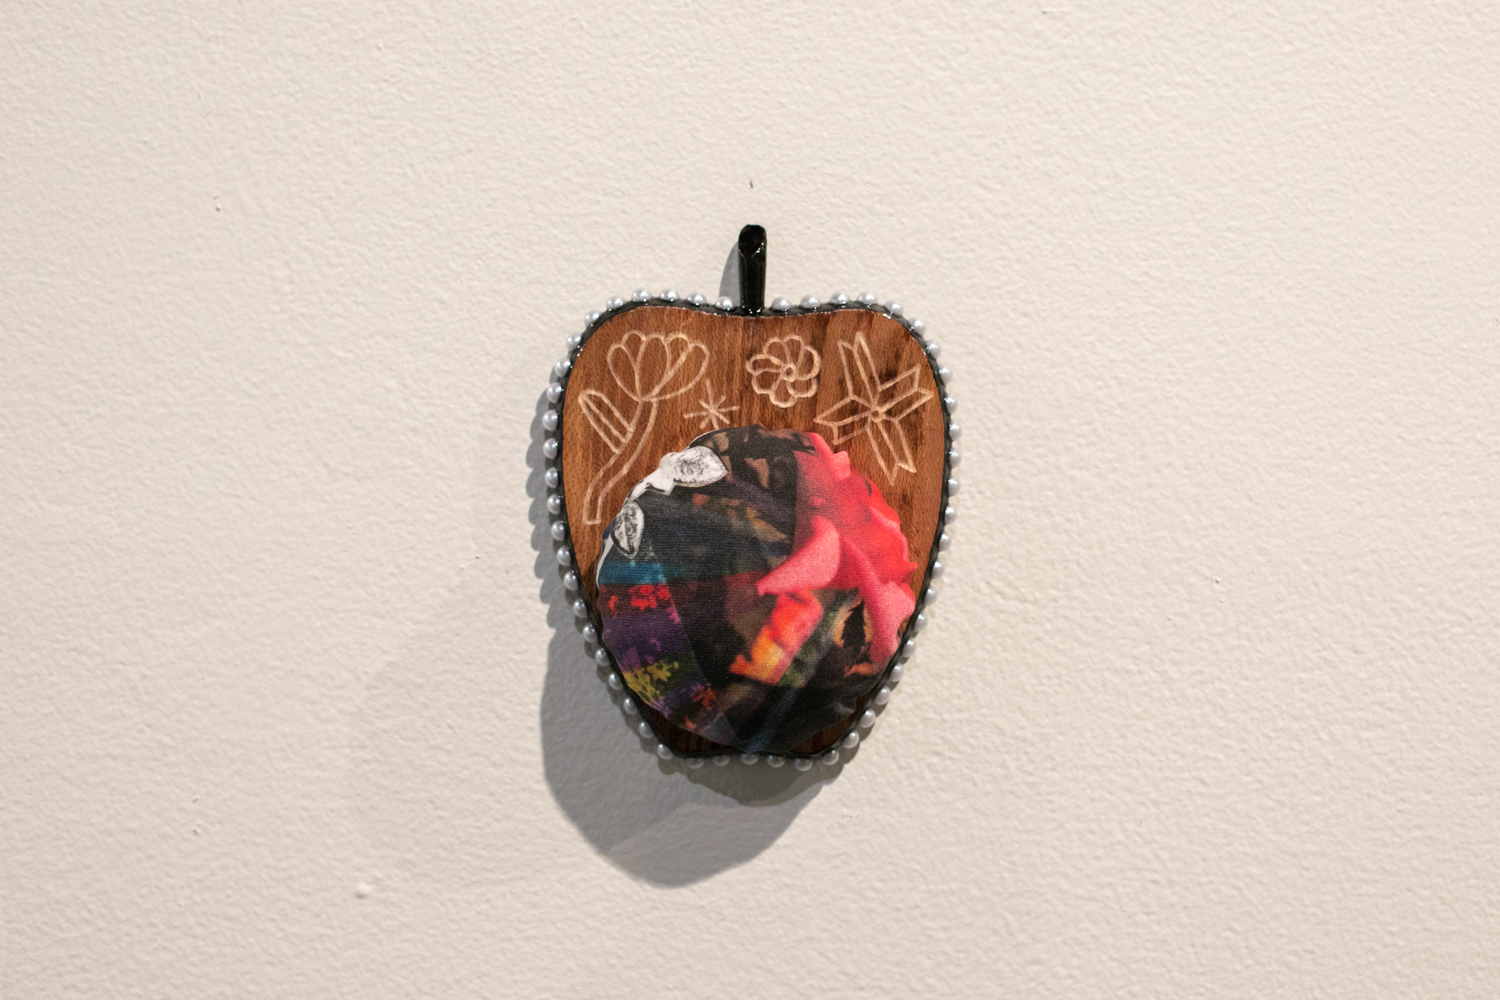 Apple Isle Pincushion, 2019, found wood coaster (engraved), handmade paper collage digitally printed on cotton sateen, plastic pearls, acrylic paint, resin.  Photography by Mel De Ruyter